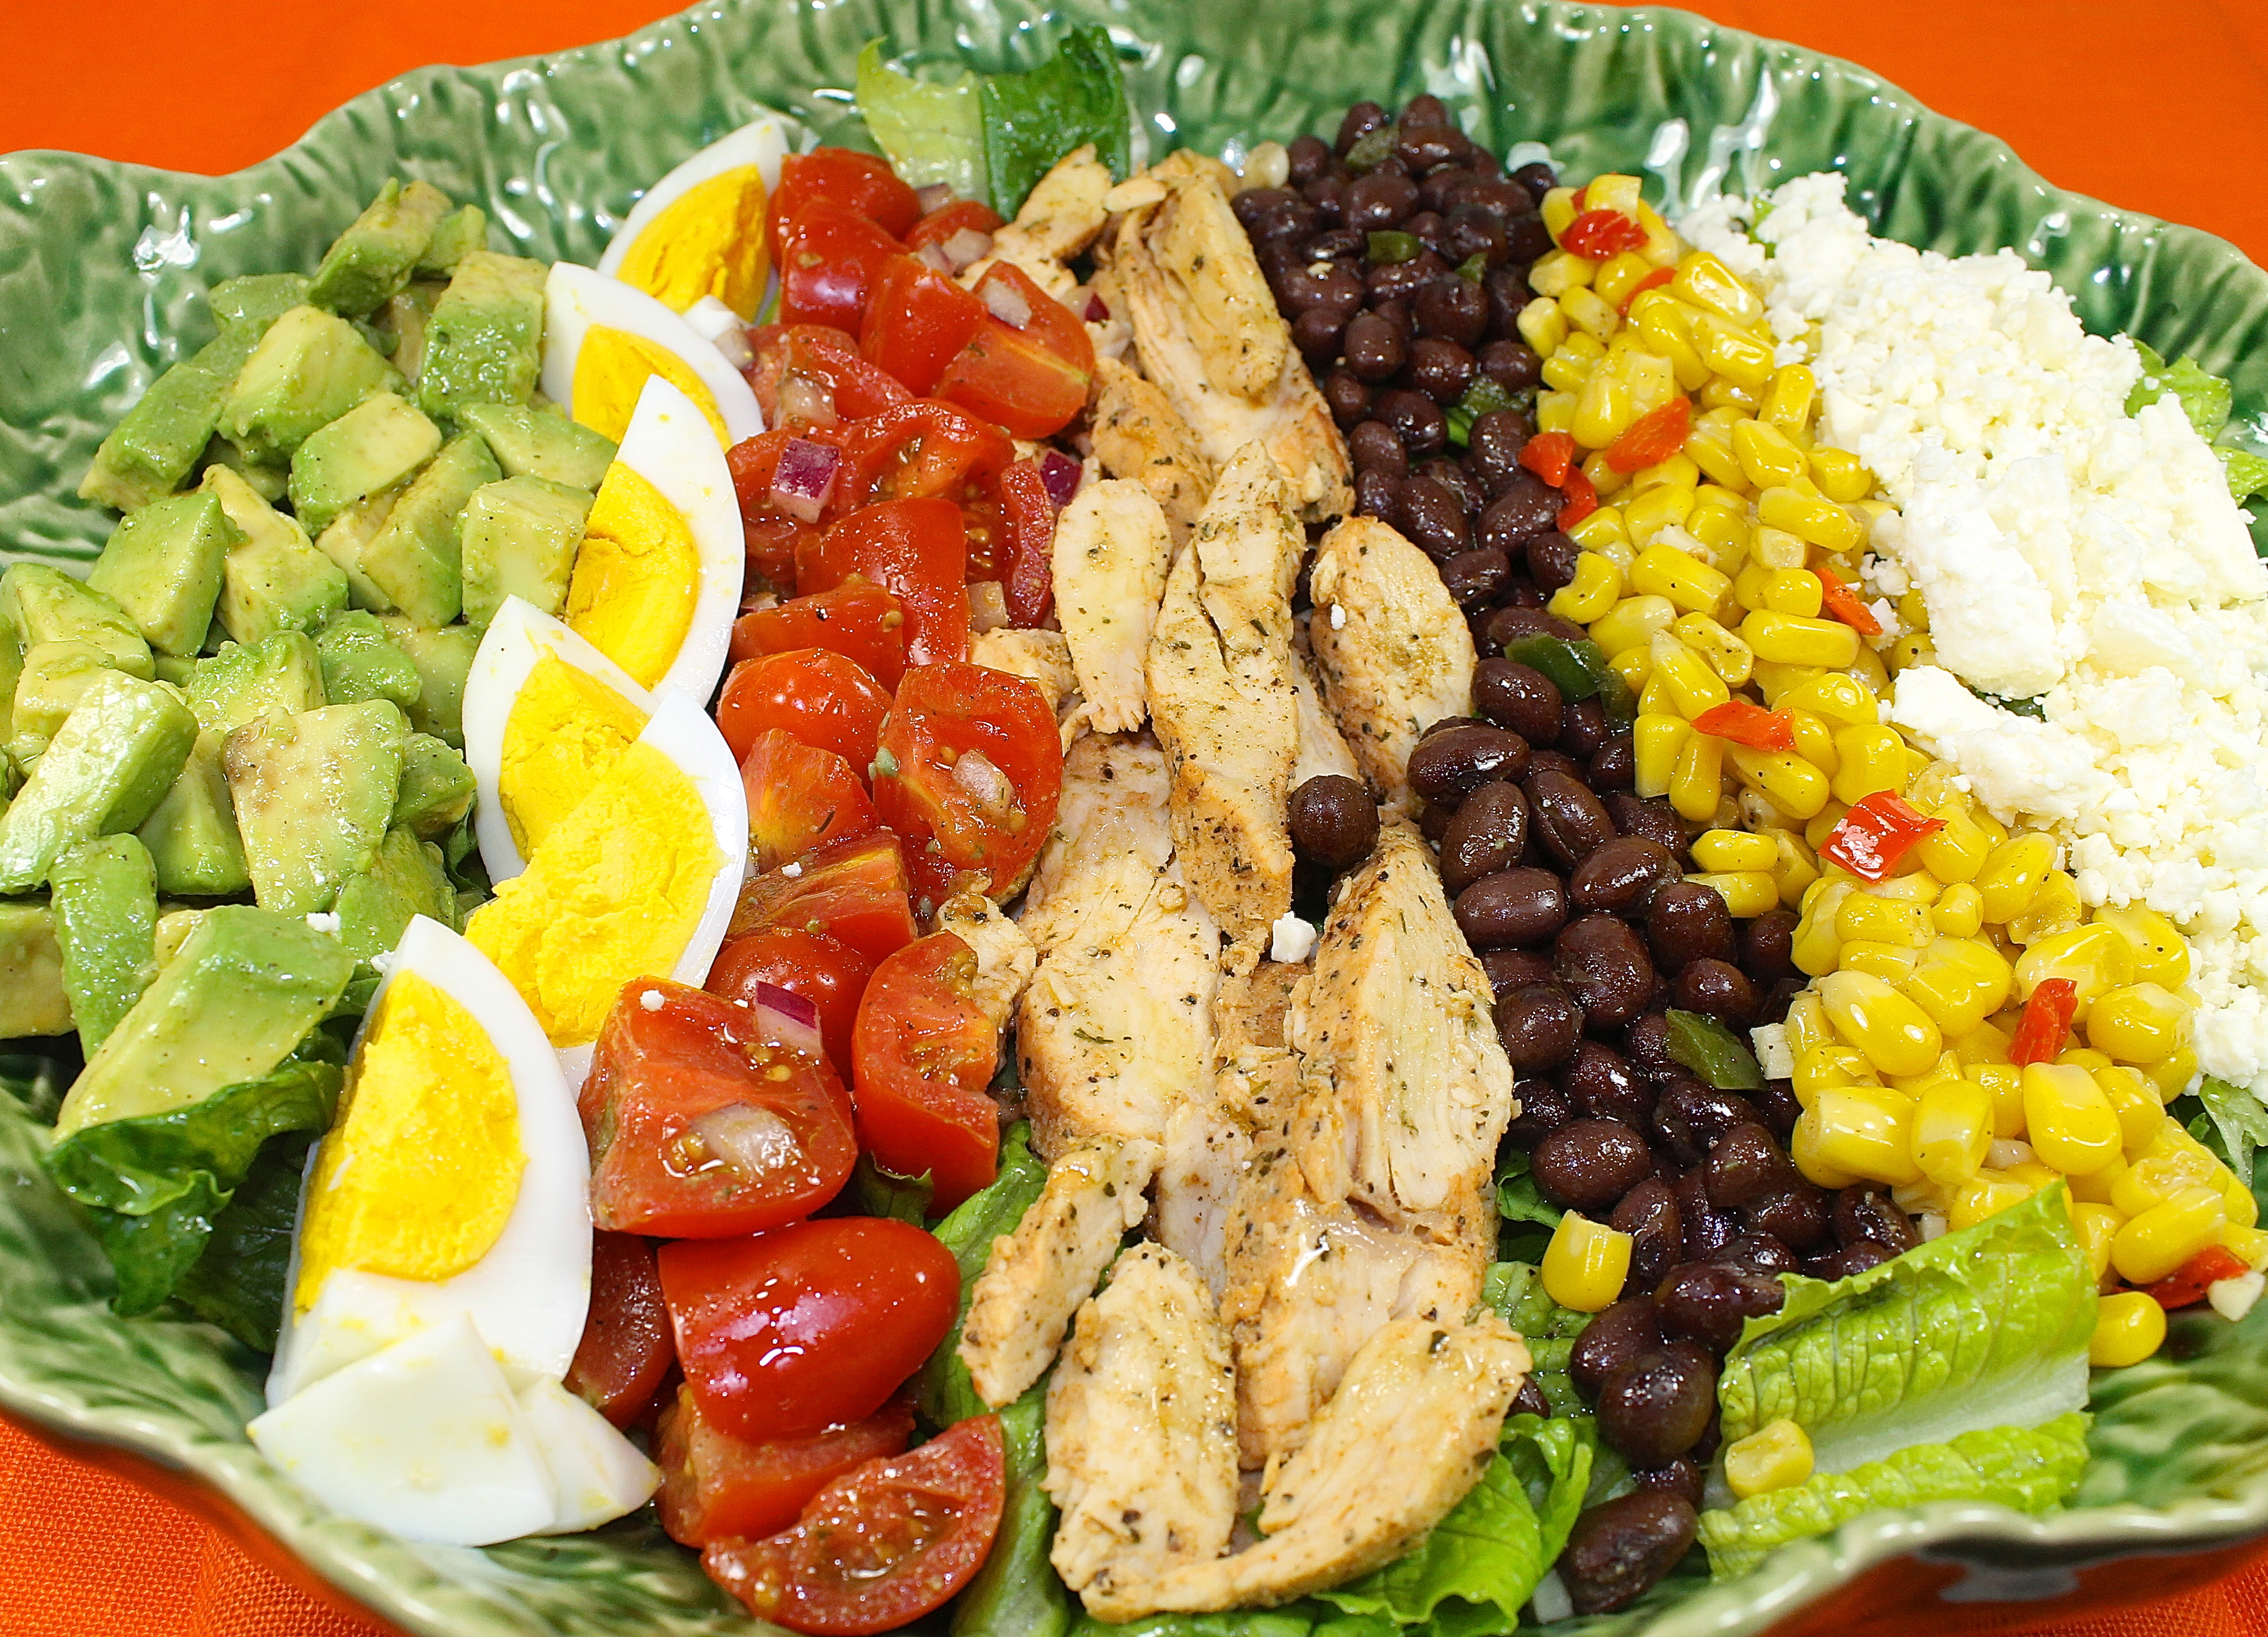 Southwestern Salad, A Cobb Salad With A Mexican Flair